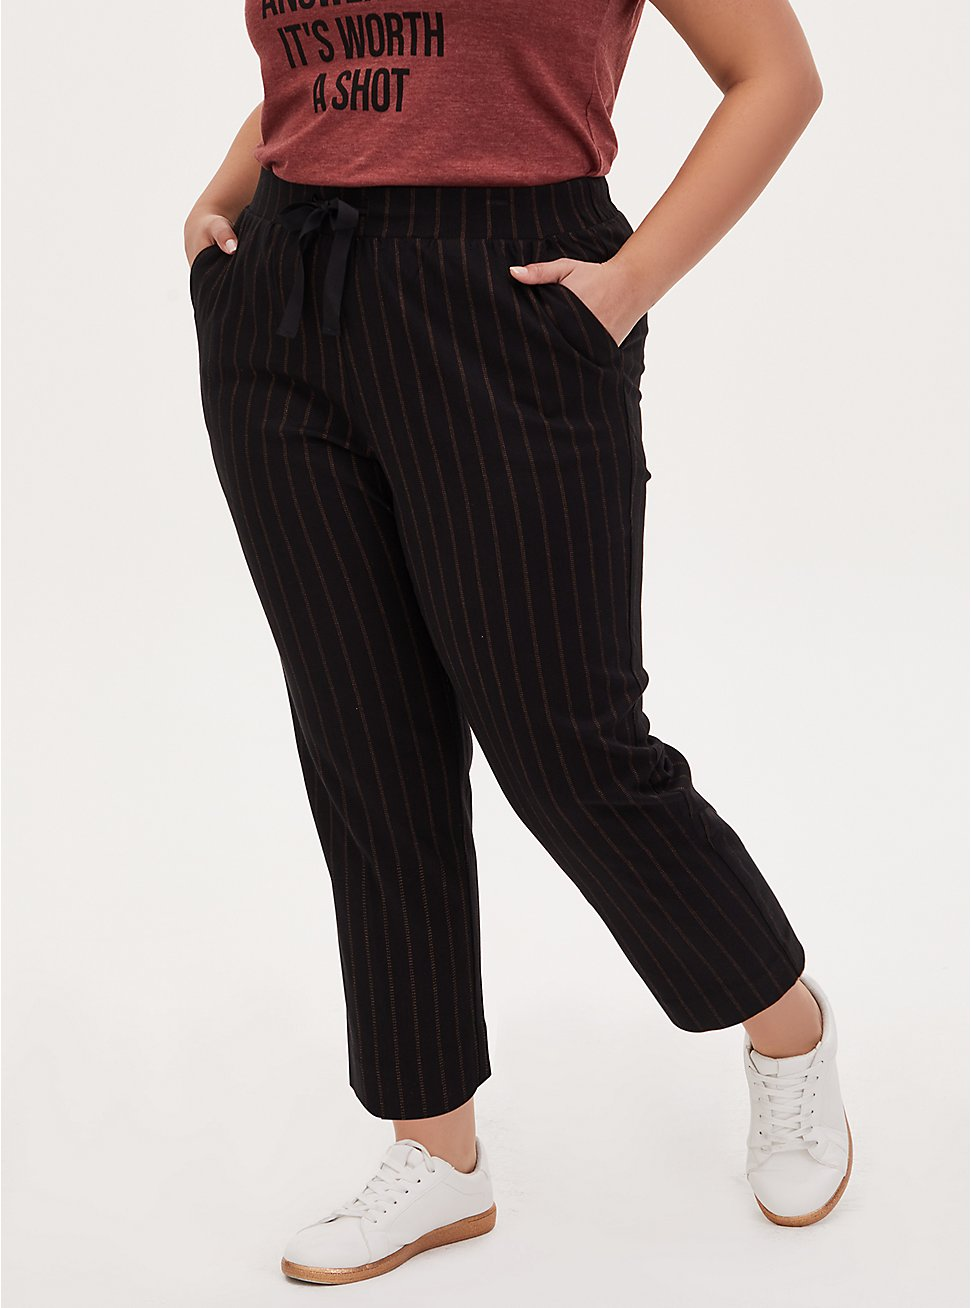 Black Stripe Twill Drawstring Crop Pant, , hi-res